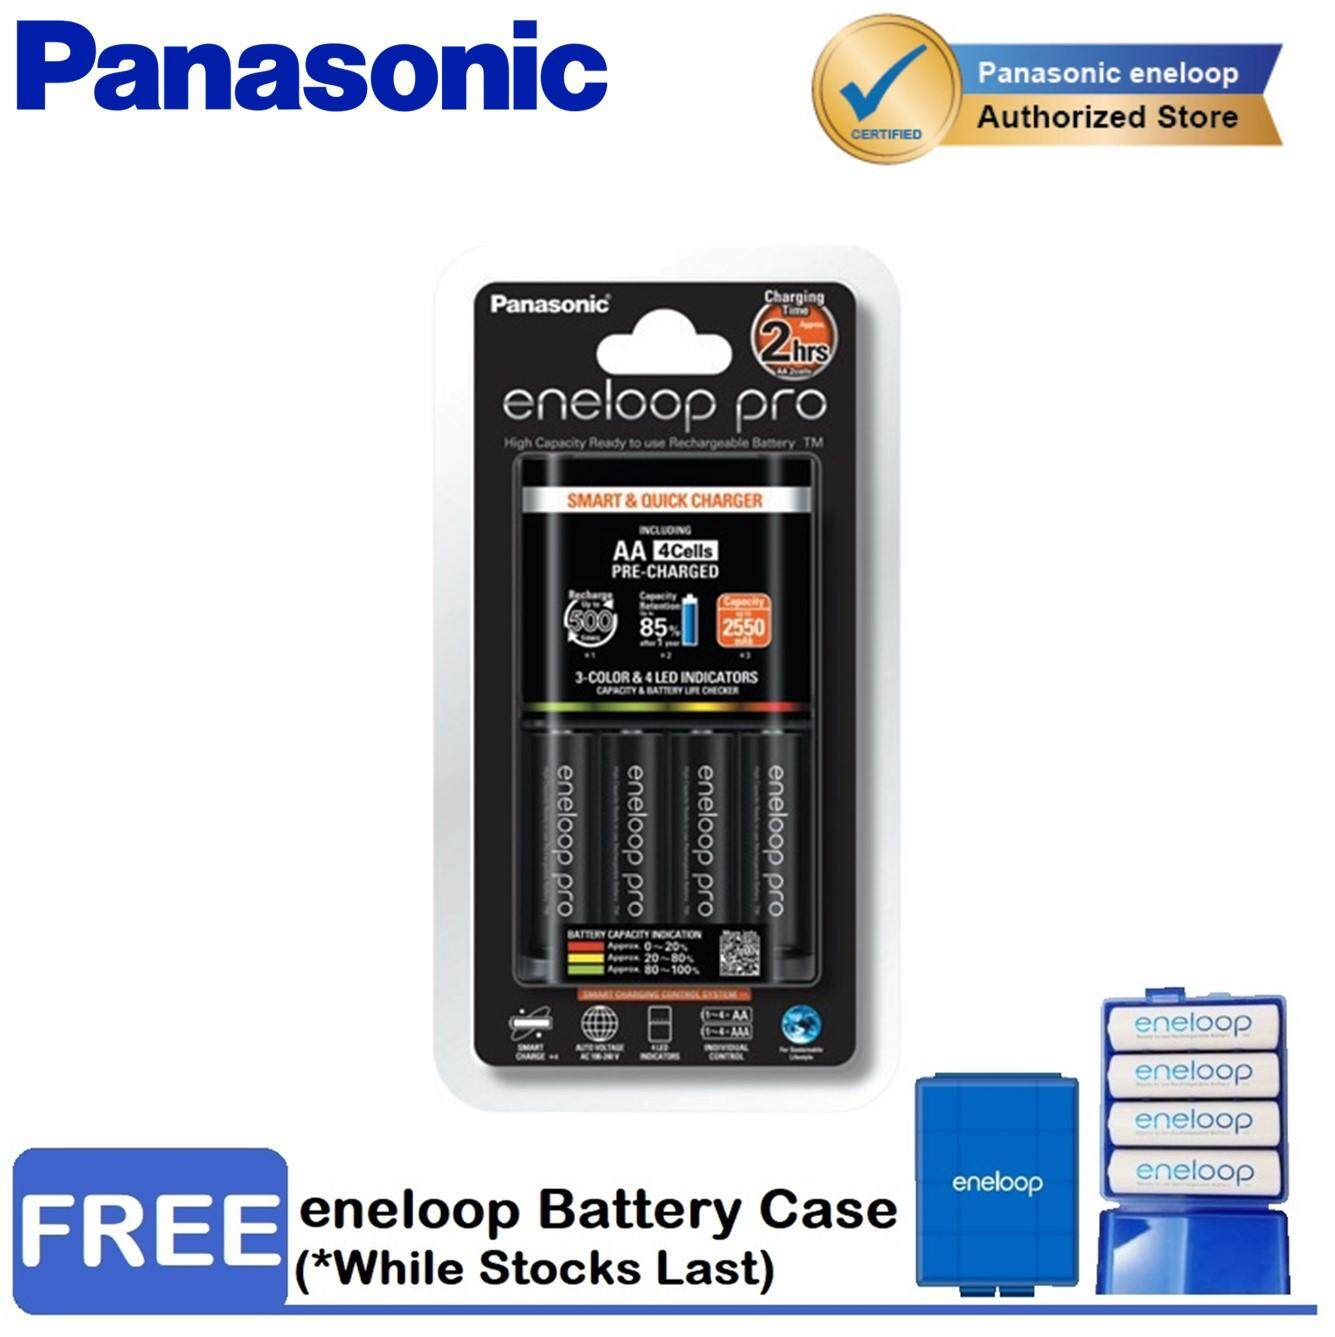 Panasonic Eneloop Pro Quick Charger 3-Color LED Indicator and 4 x AA 2550mAh Rechargeable Battery (K-KJ55HCC40M) Malaysia